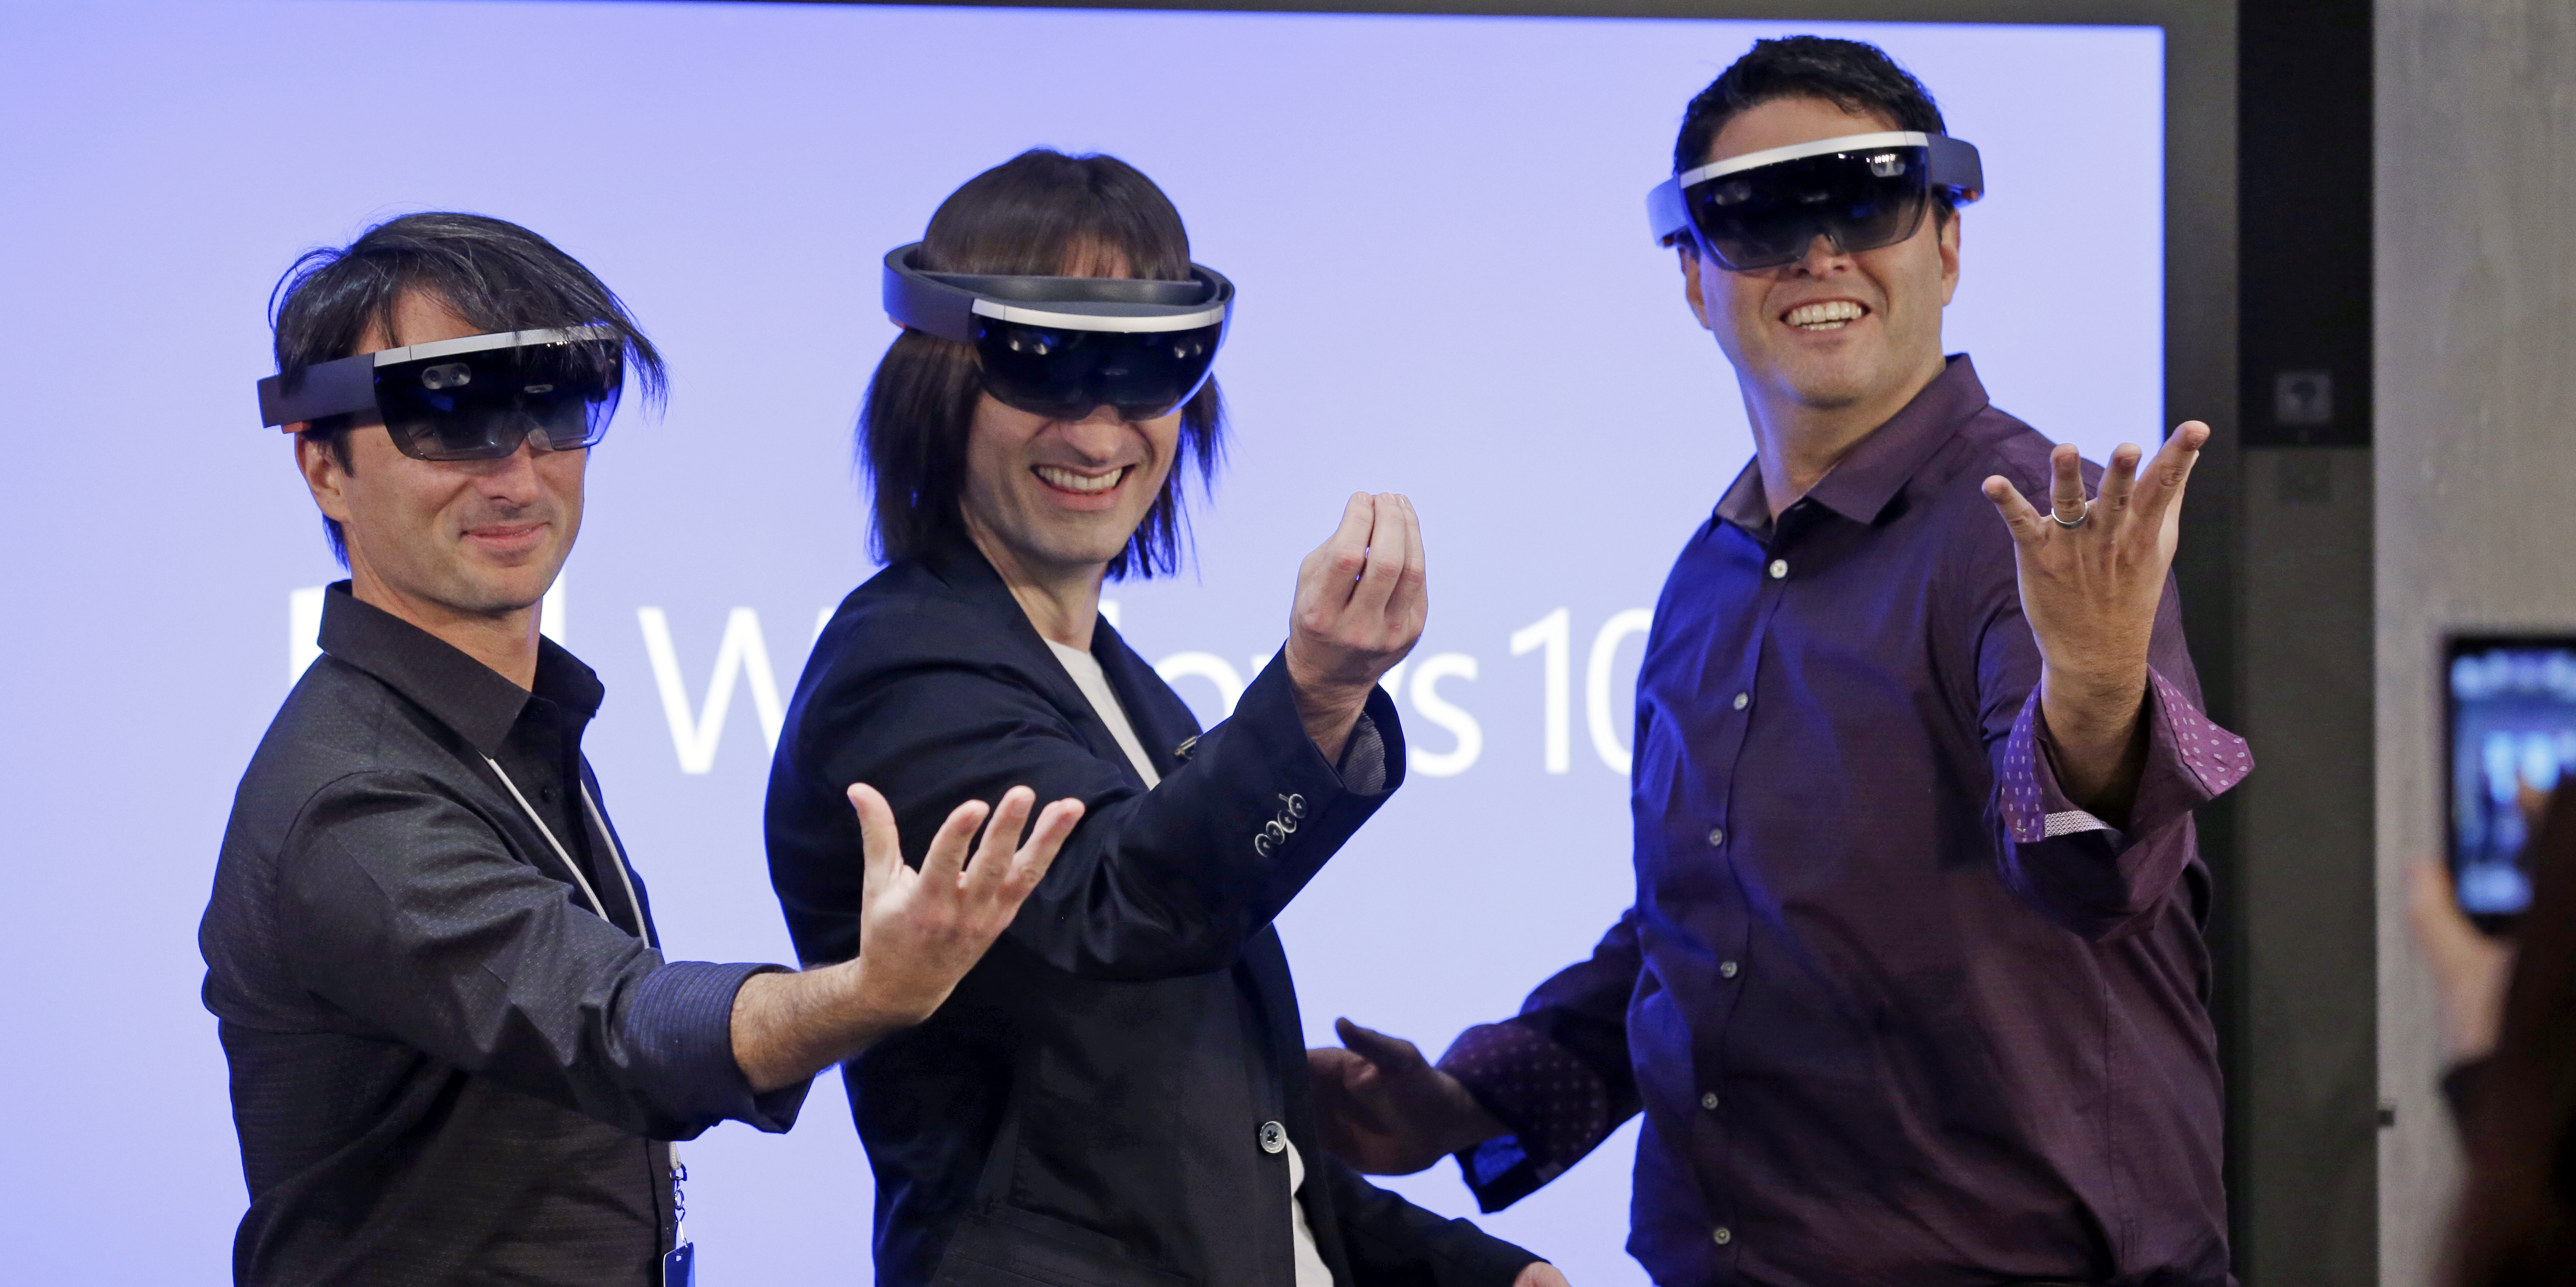 Microsoft's Joe Belfiore, from left, Alex Kipman, and Terry Myerson playfully pose for a photo while wearing Hololens devices following an event demonstrating new features of Windows 10 at the company's headquarters on Wednesday, Jan. 21, 2015